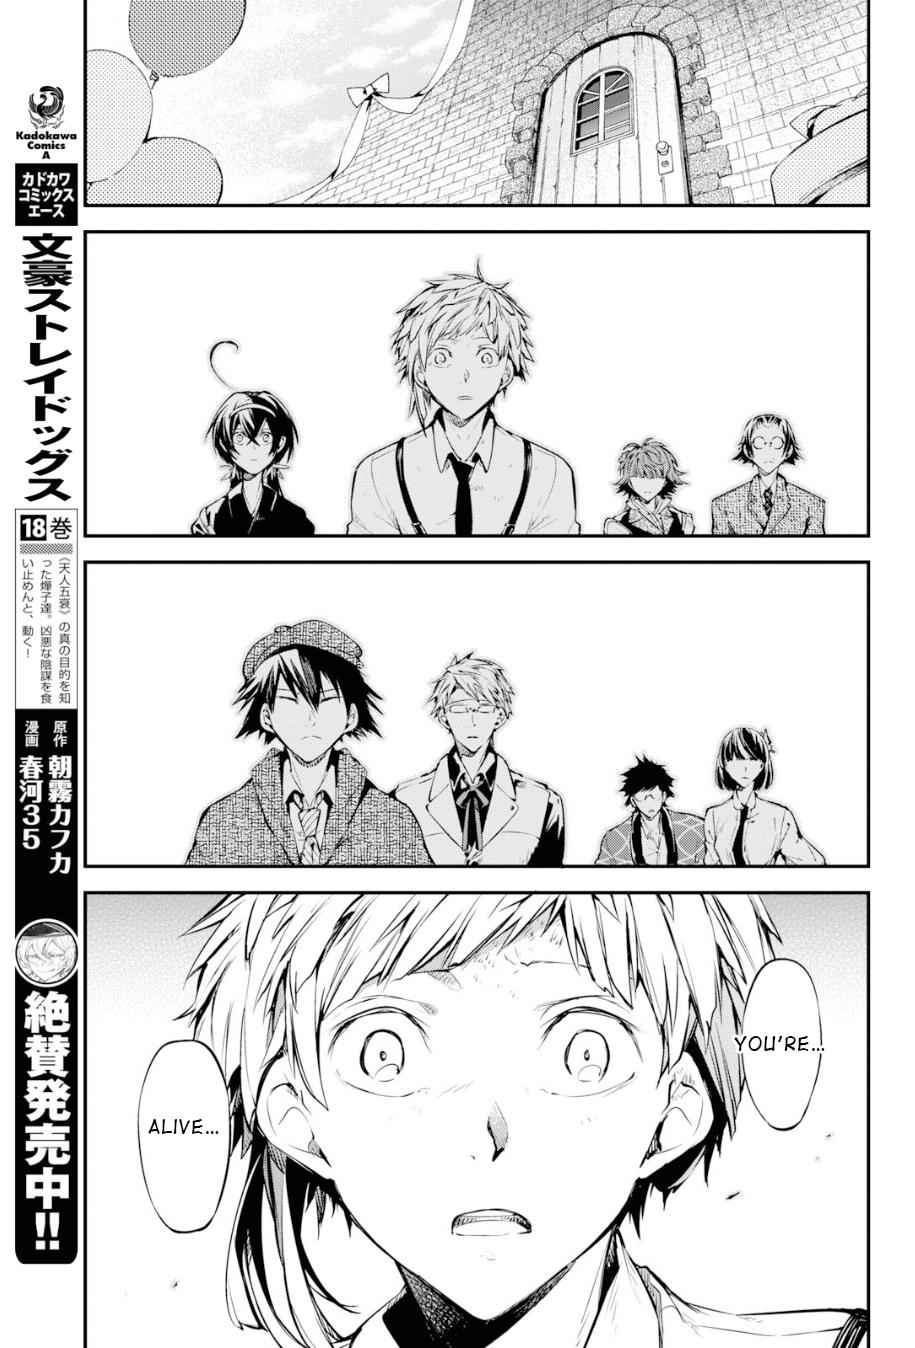 Bungou Stray Dogs Chapter 81 Page 15